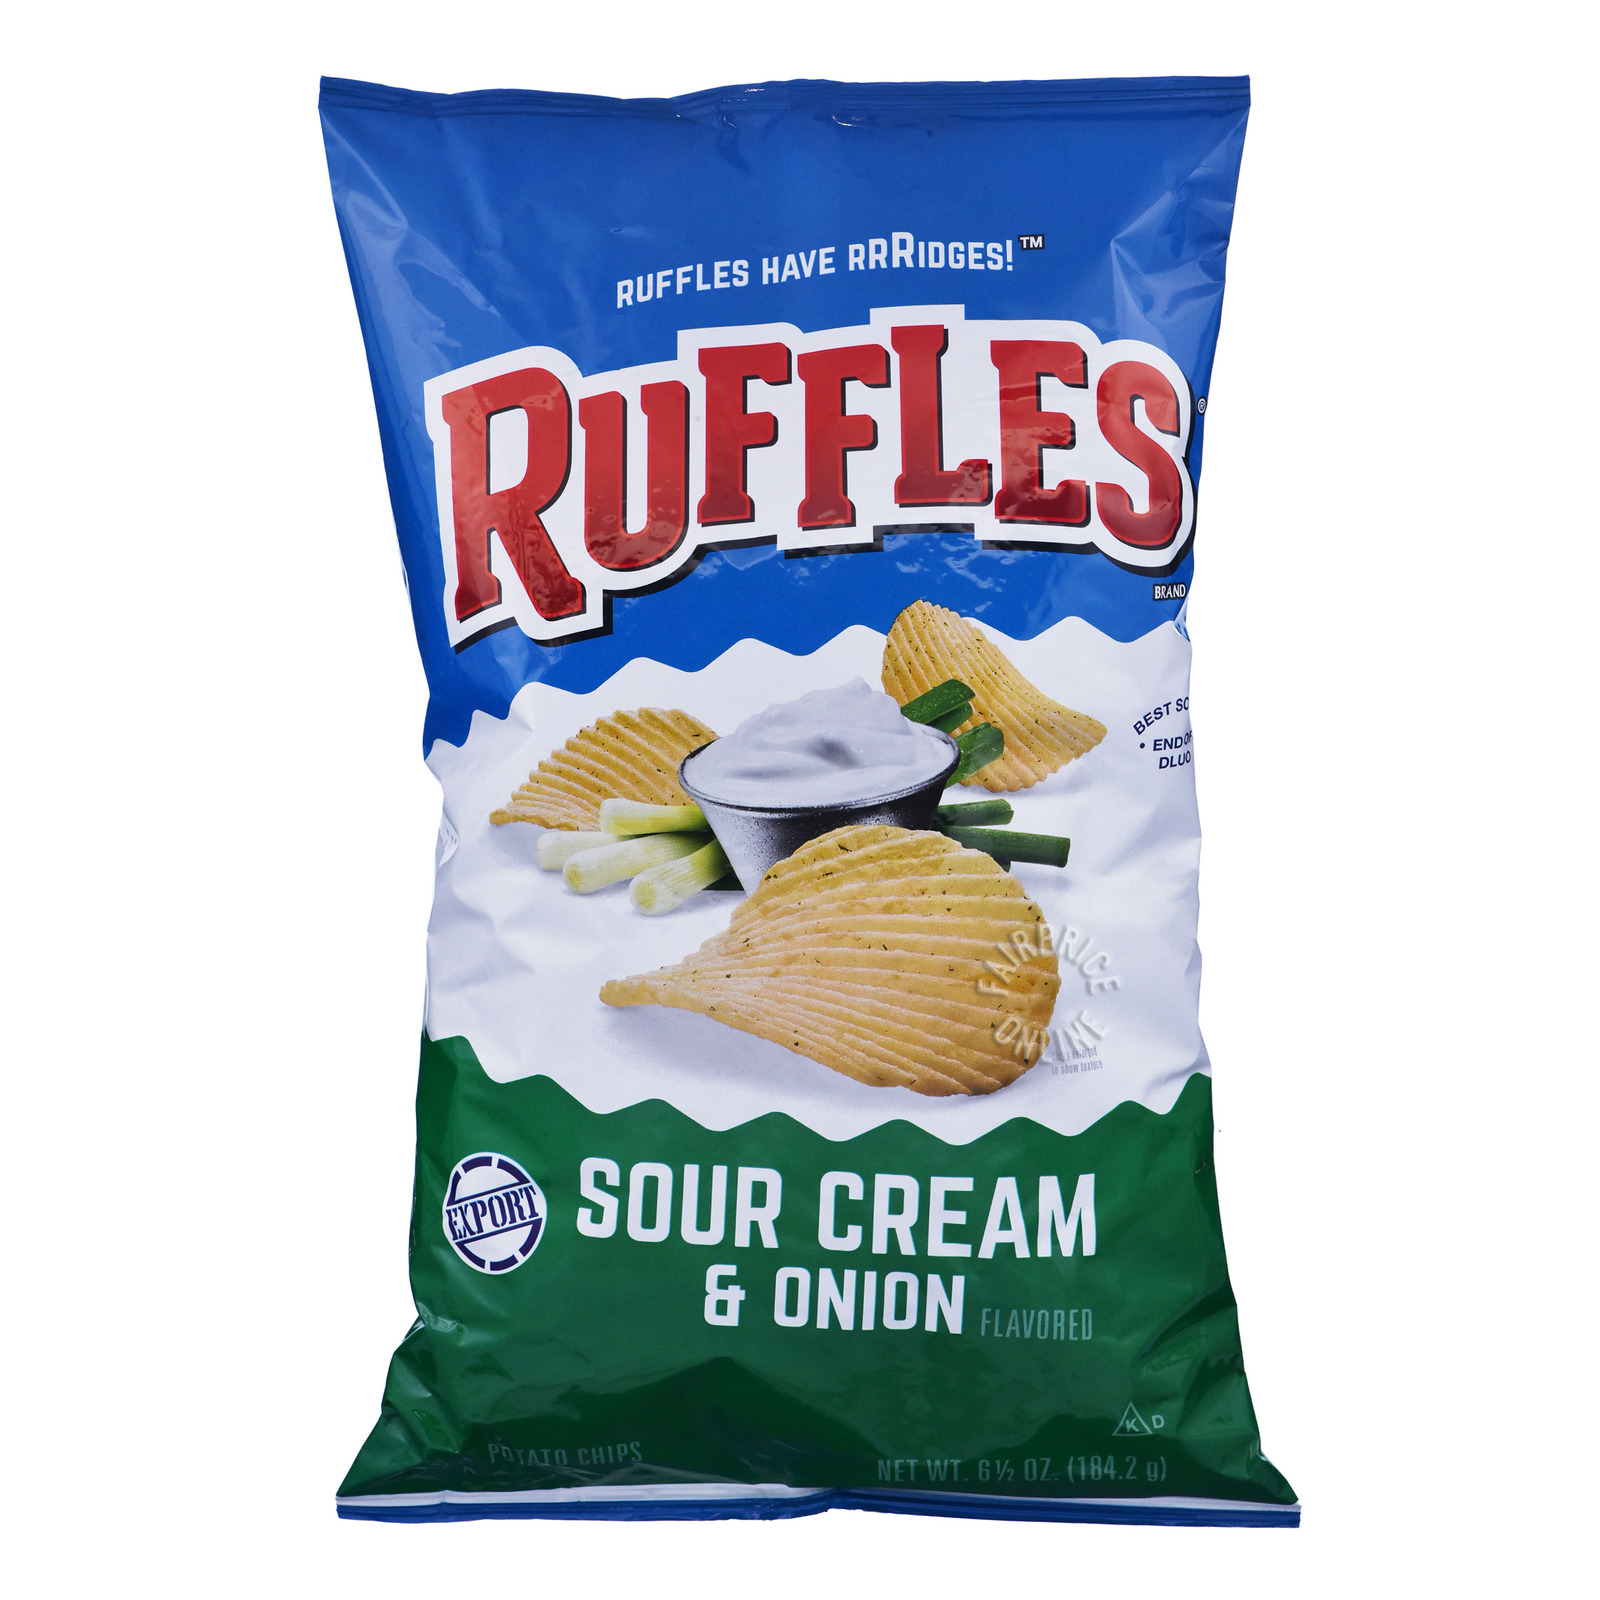 Ruffles Potato Chips - Sour Cream & Onion